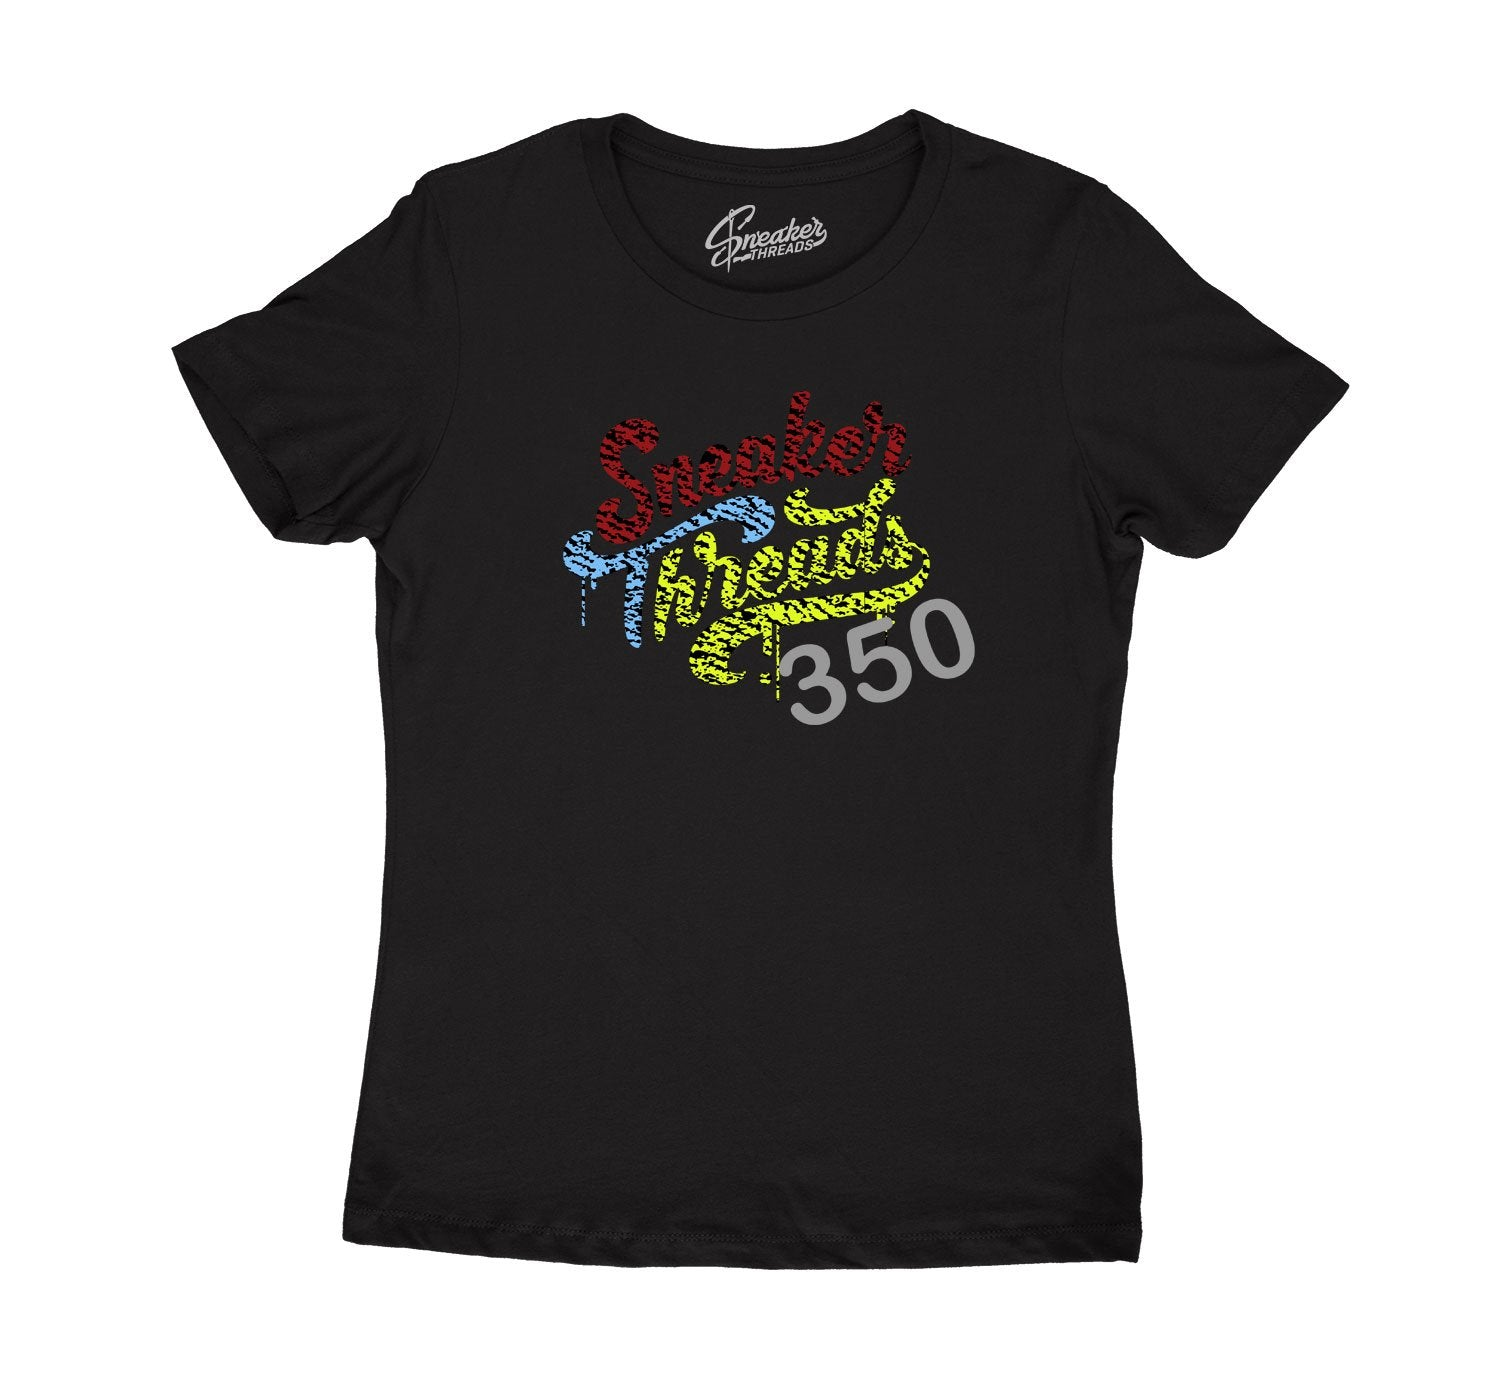 Womens tee collection has matching womens tees perfectly